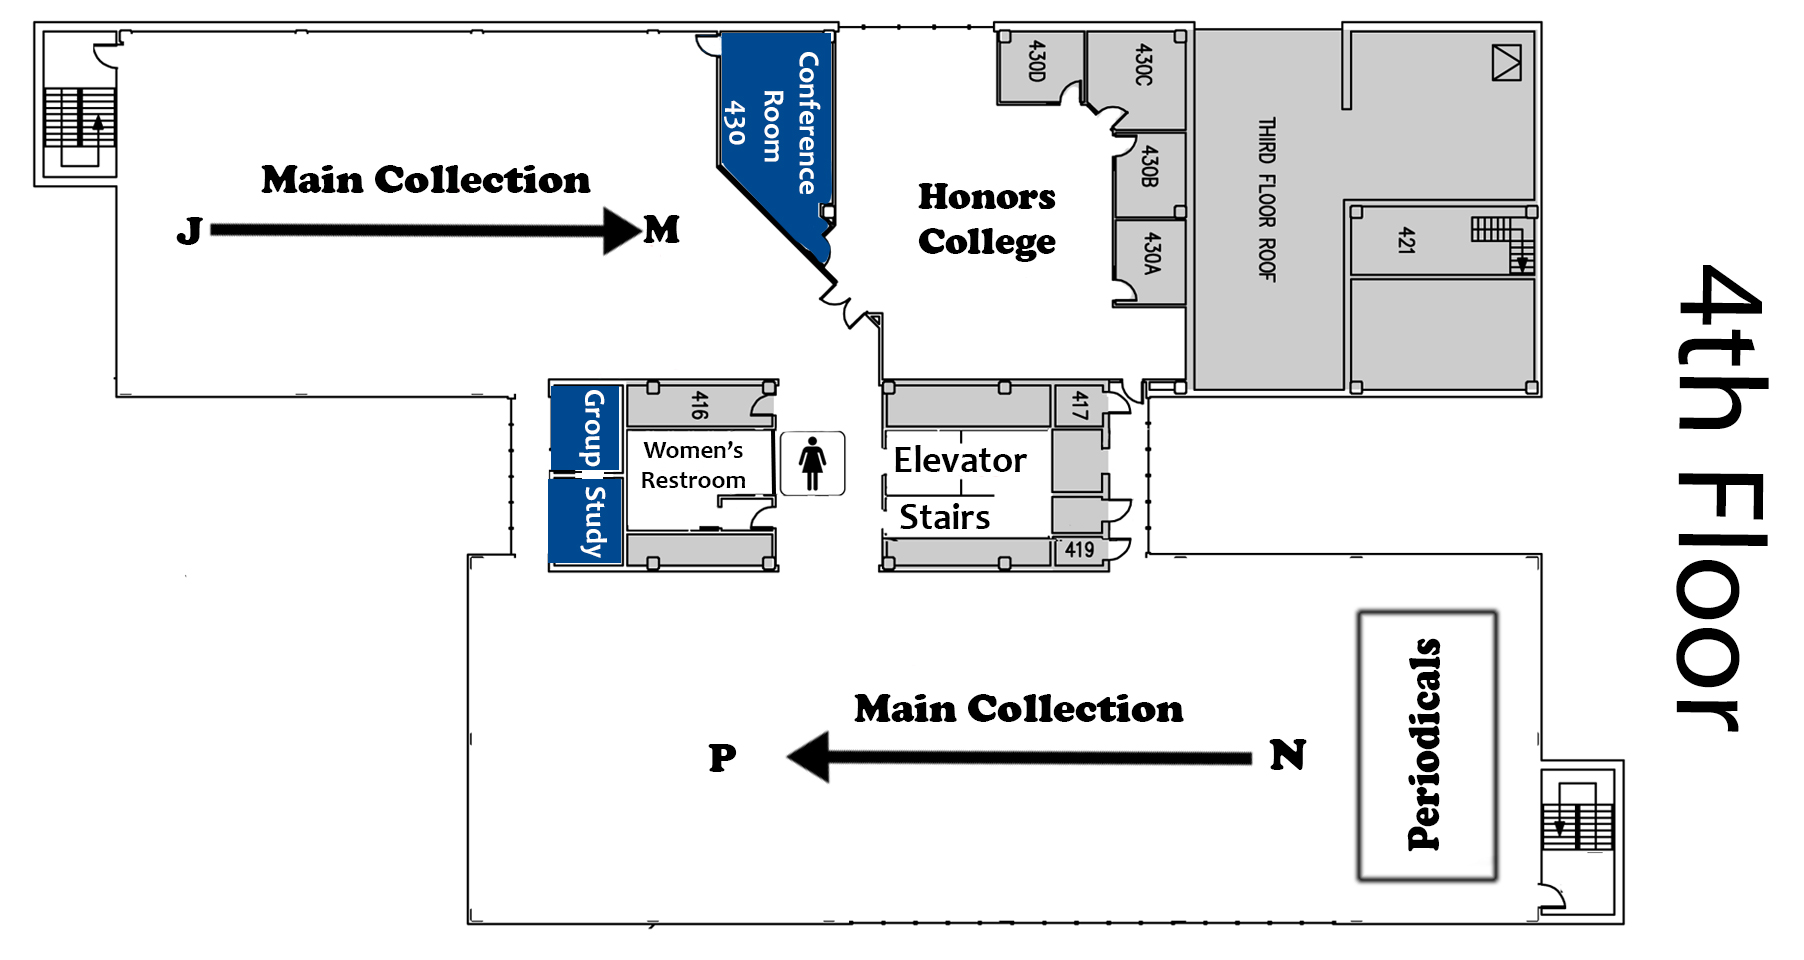 Map of the fourth floor of the library